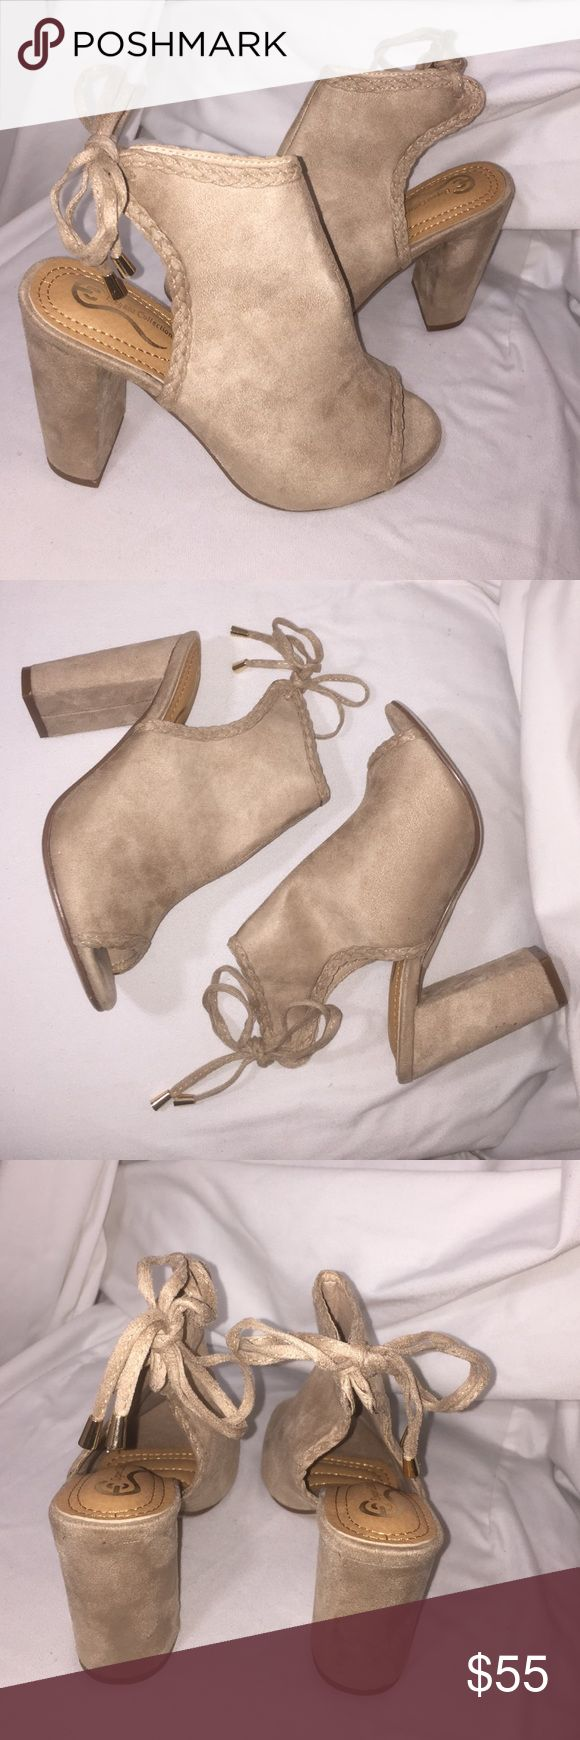 Open toe booties Size 7 tan open toe booties, lace up back with gold lace tips & braided trim detail. Very soft suede/microfiber feel. (Also available in black) elegant collection Shoes Ankle Boots & Booties